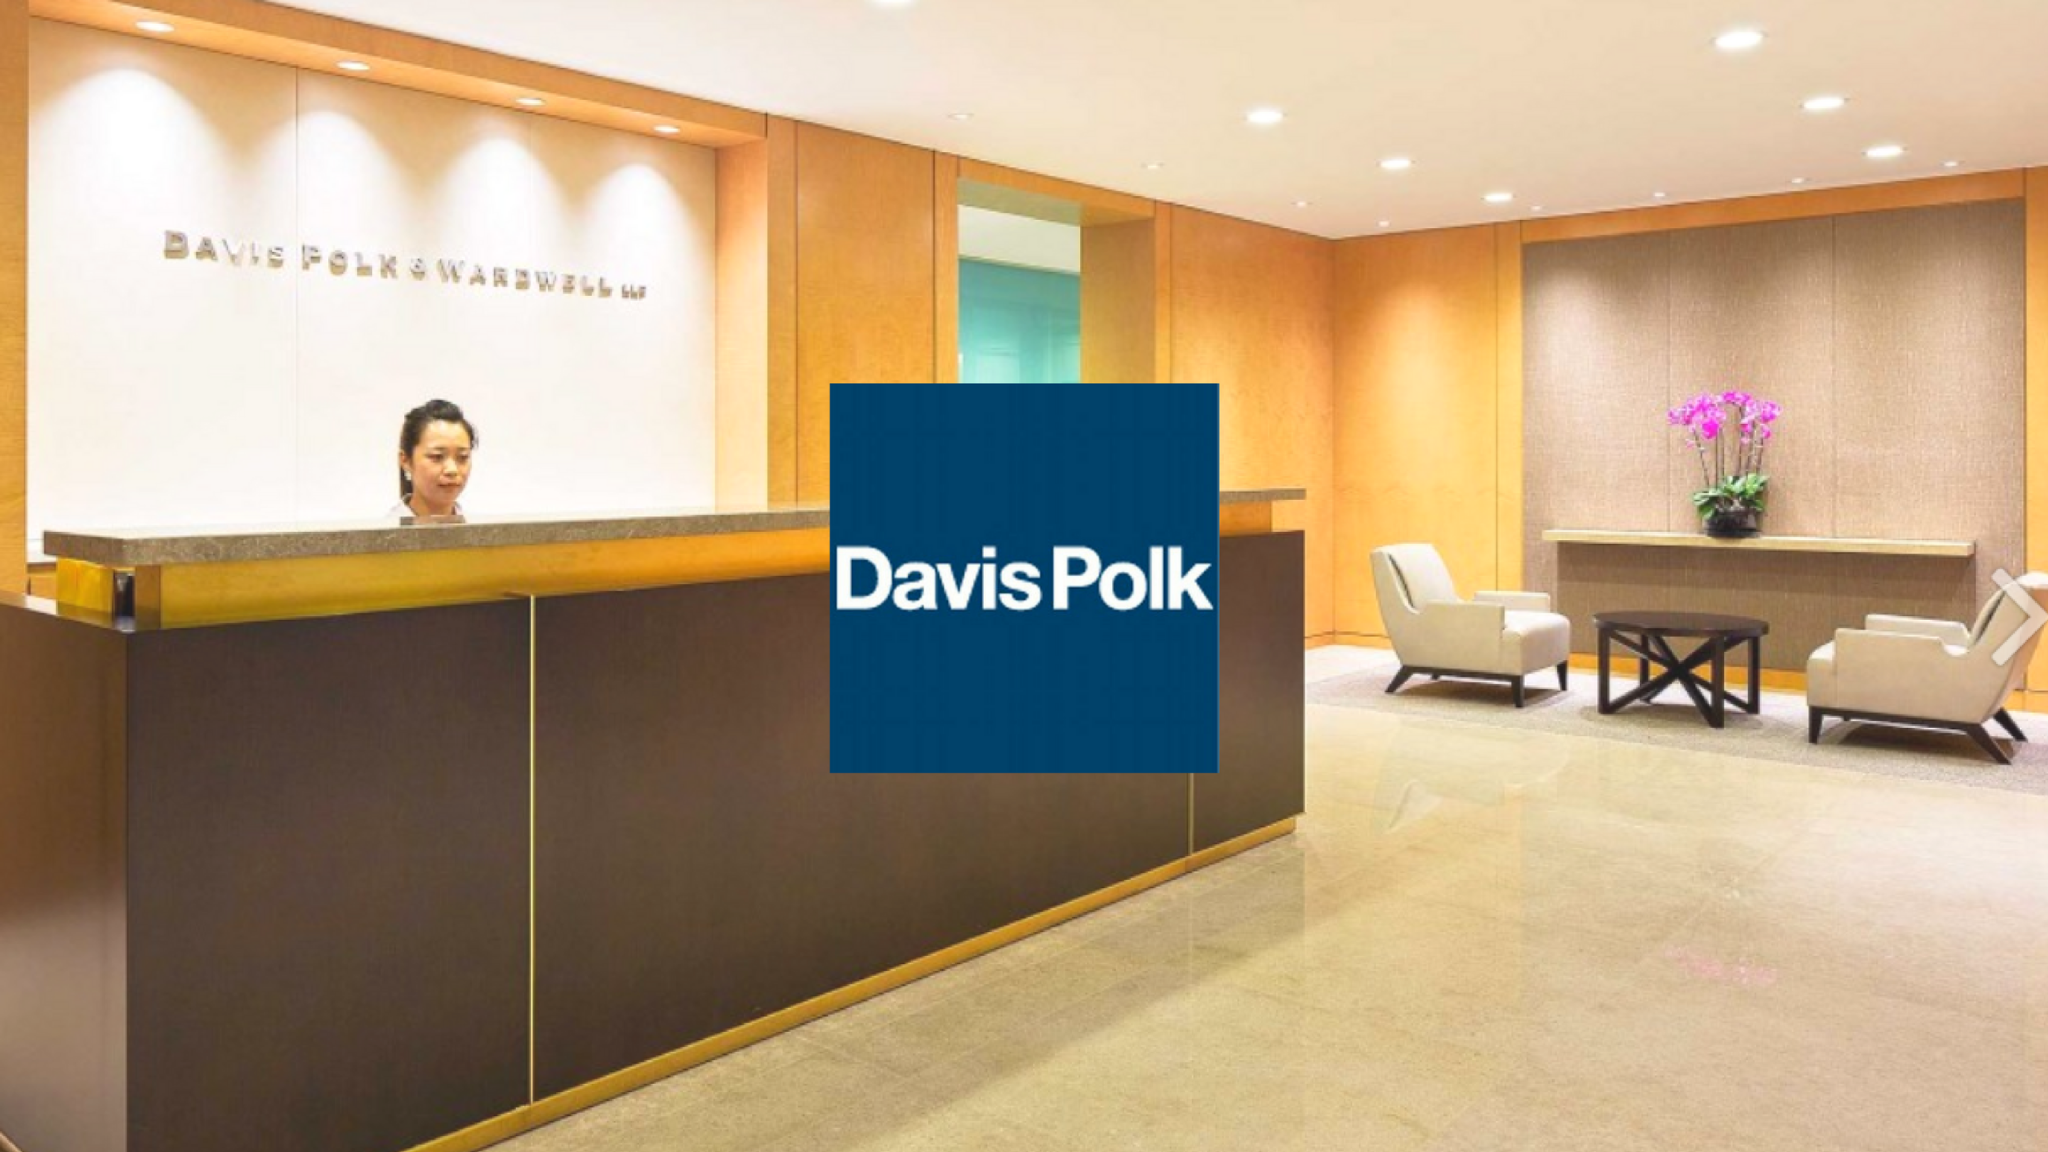 Davis Polk & Wardwell Best Legal Law Firms in the World UpSlide